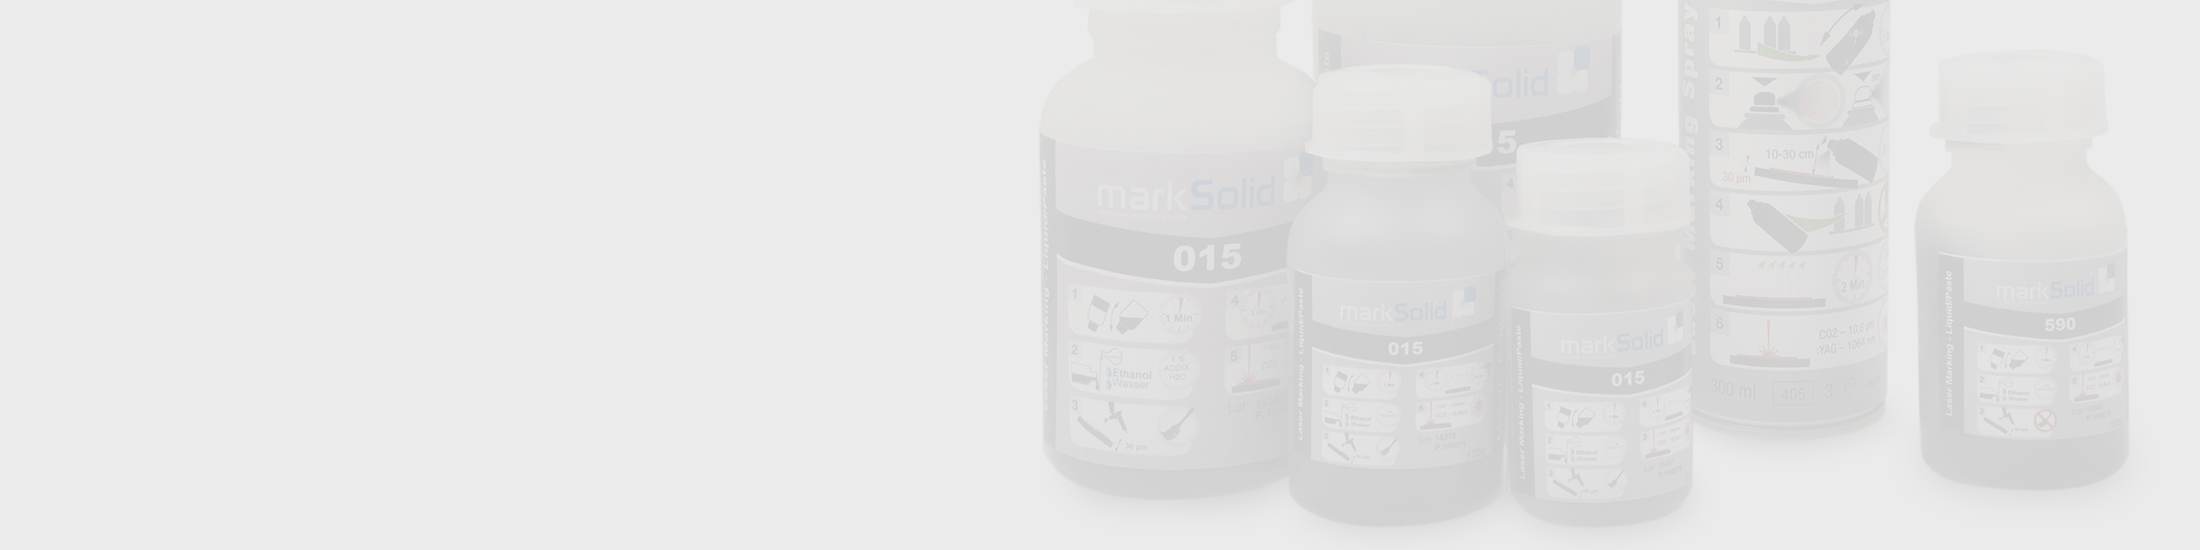 metal marking spray for uncovered metal sheets